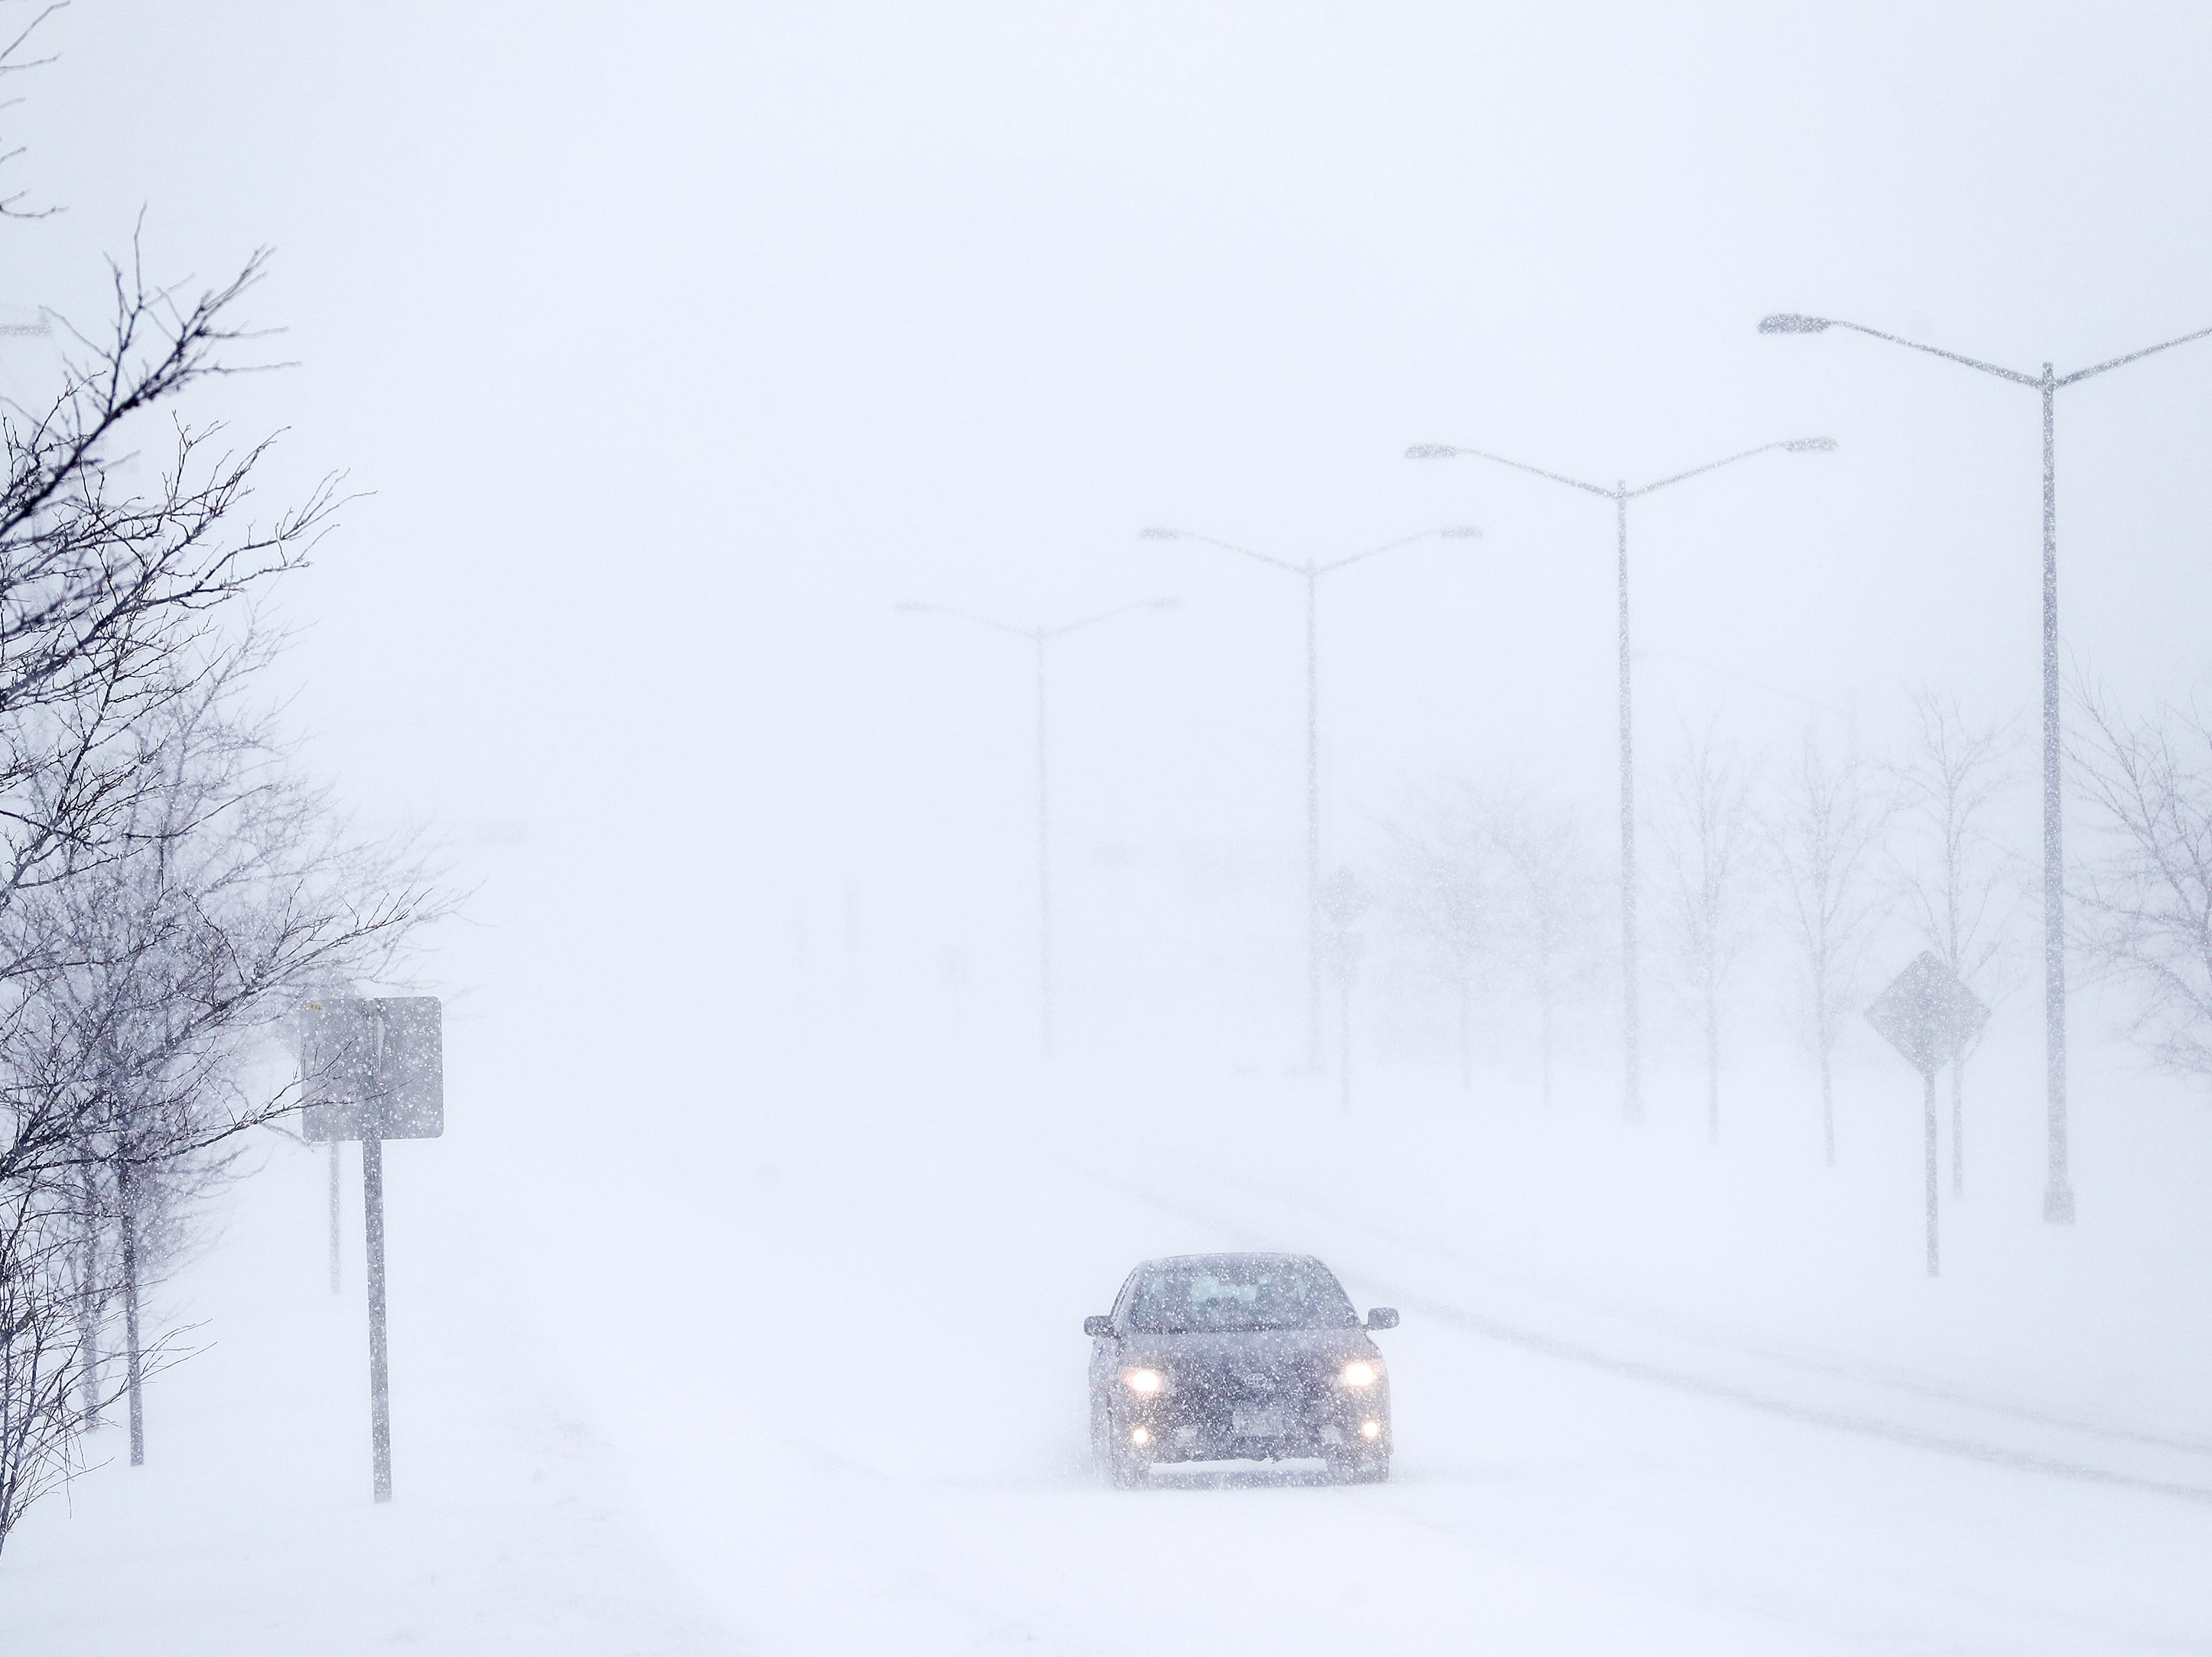 Traffic moves along Mason St during a snowstorm on Monday, January 28, 2019 in Green Bay, Wis.